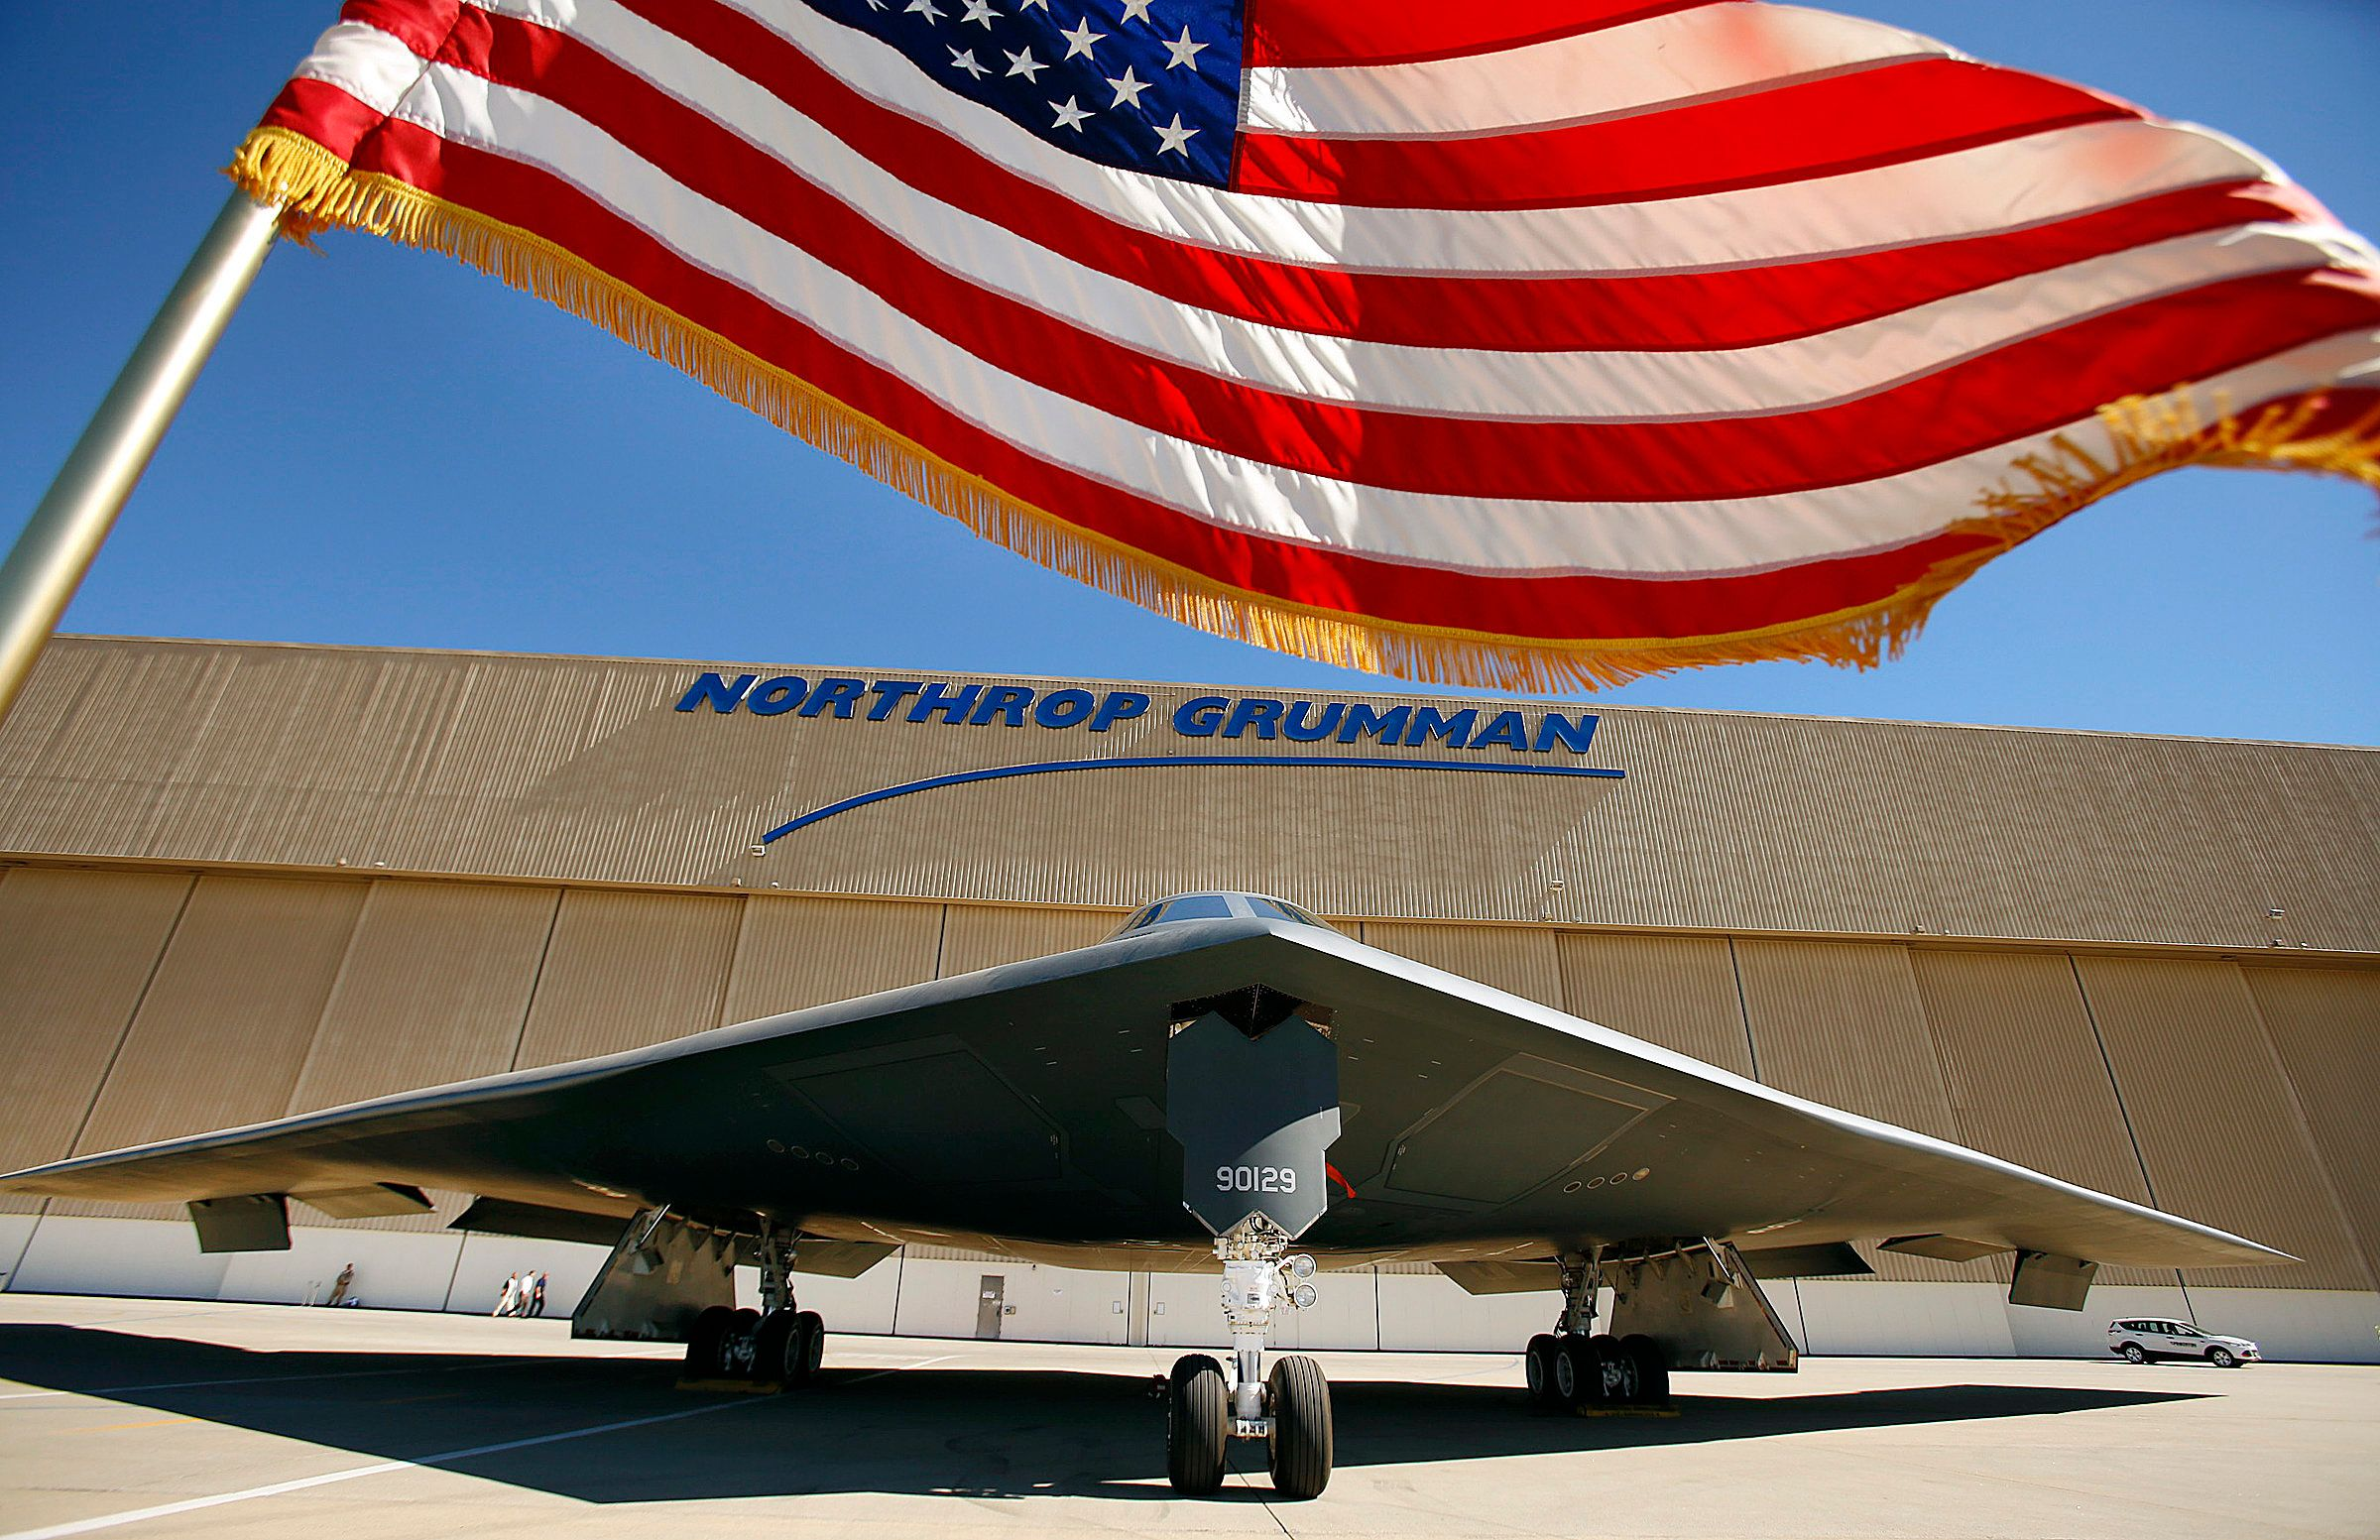 PALMDALE, CA  JULY 17, 2014 -- The US flag flies near the U.S. Air Force's B-2 Spirit Stealth bomber 'Spirit of Georgia' at the Northrop Grumman Corp. facility at U.S. Air Force Plant 42 in Palmdale on July 17, 2014 as Northrop Grumman hosts the 25th anniversary celebration of the first flight in the same location at the Palmdale Aircraft Integration Center of Excellence at U.S. Air Force Plant 42. Just as they had on that historic day 25 years ago, several hundred Northrop Grumman employees, civic leaders and Air Force personnel stood along the fence line in Palmdale to watch a B-2 stealth bomber taxi onto the runway for flight following the ceremony.  (Photo by Al Seib/Los Angeles Times via Getty Images)